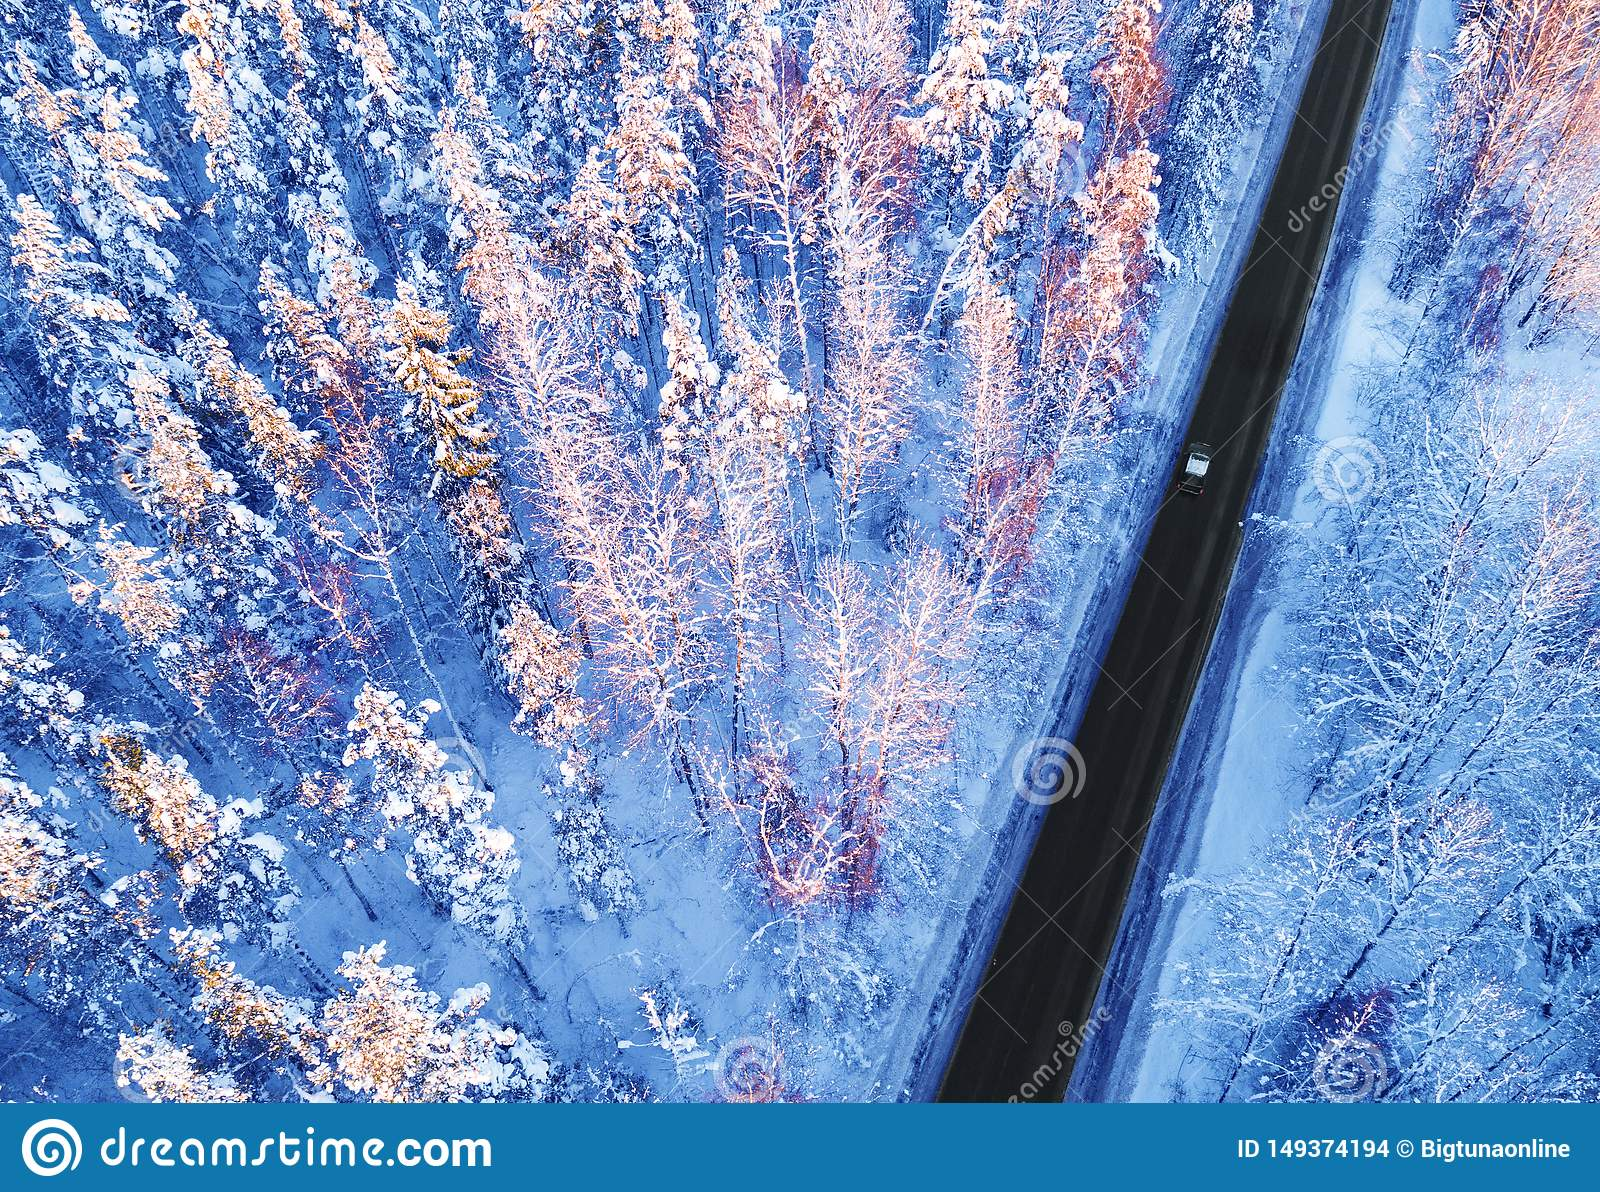 Aerial view of a car on winter road in the forest. Winter landscape countryside. Aerial photography of snowy forest with a car on